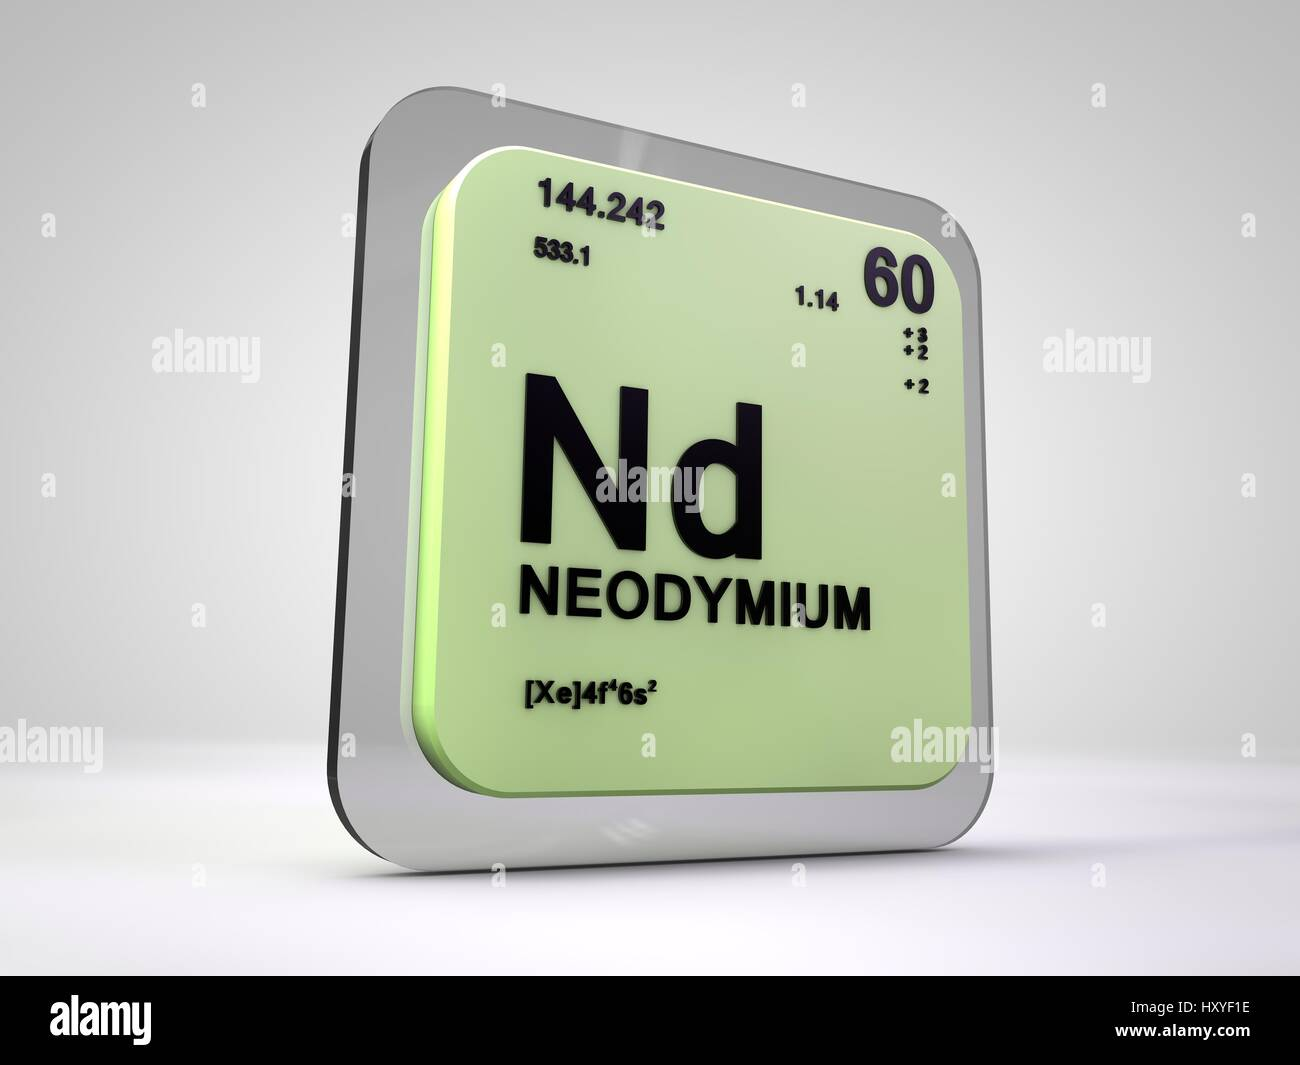 Neodymium nd chemical element periodic table 3d render stock stock photo neodymium nd chemical element periodic table 3d render gamestrikefo Choice Image